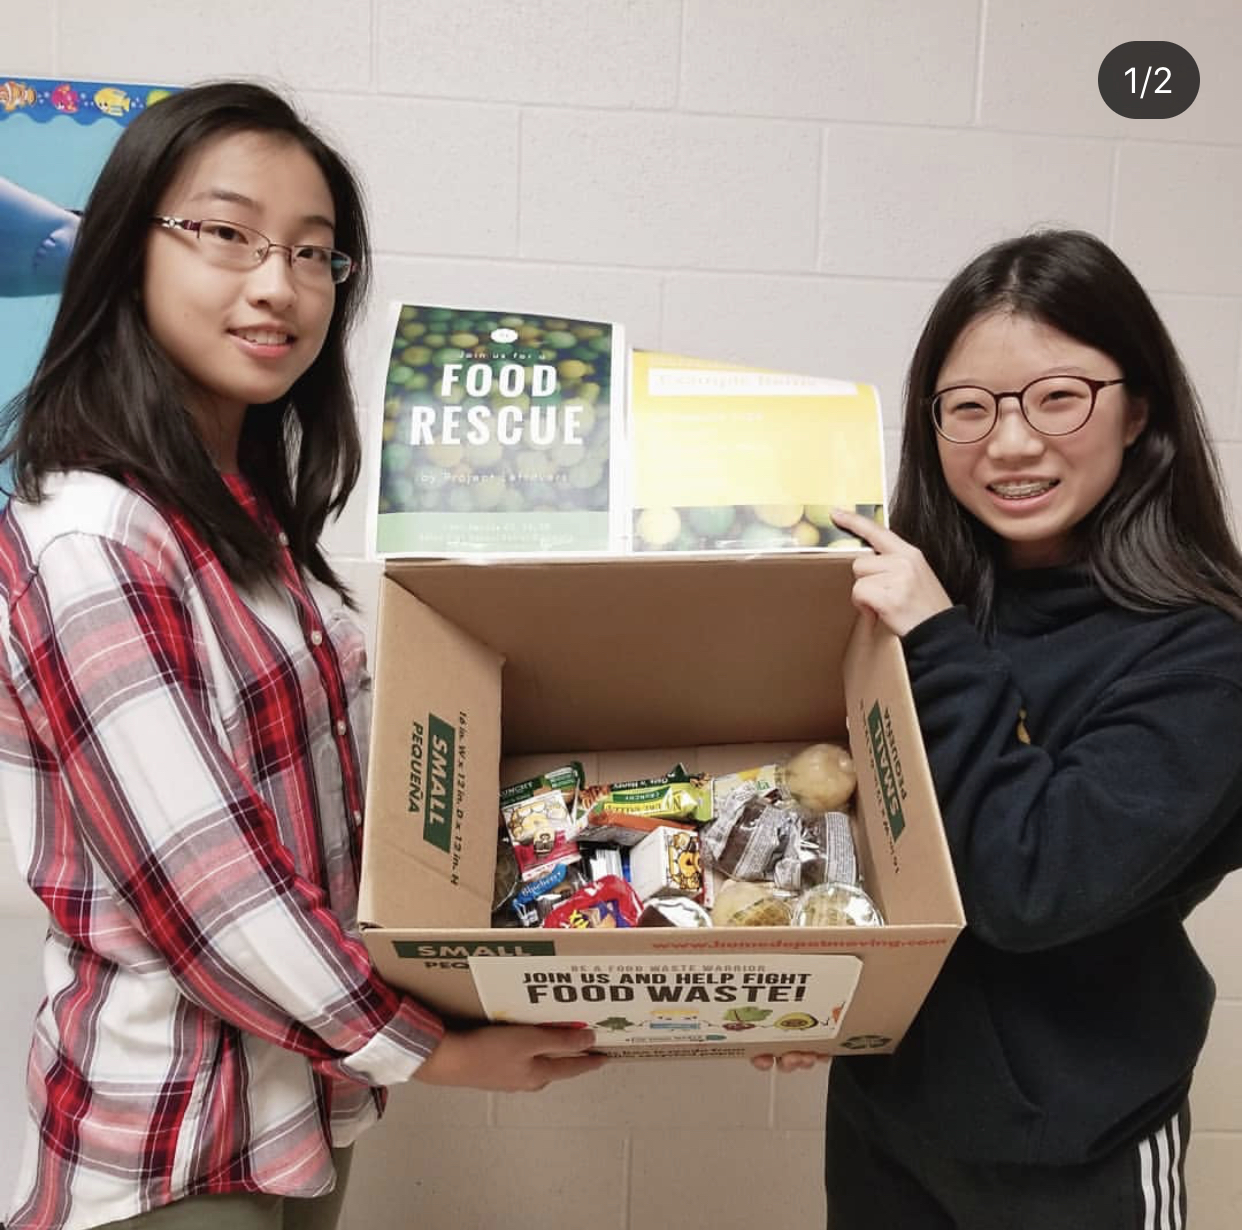 Katherine Dai (left) and Lea Kim (right) standing with a box of collected food items. PC: @projectleftovers on IG